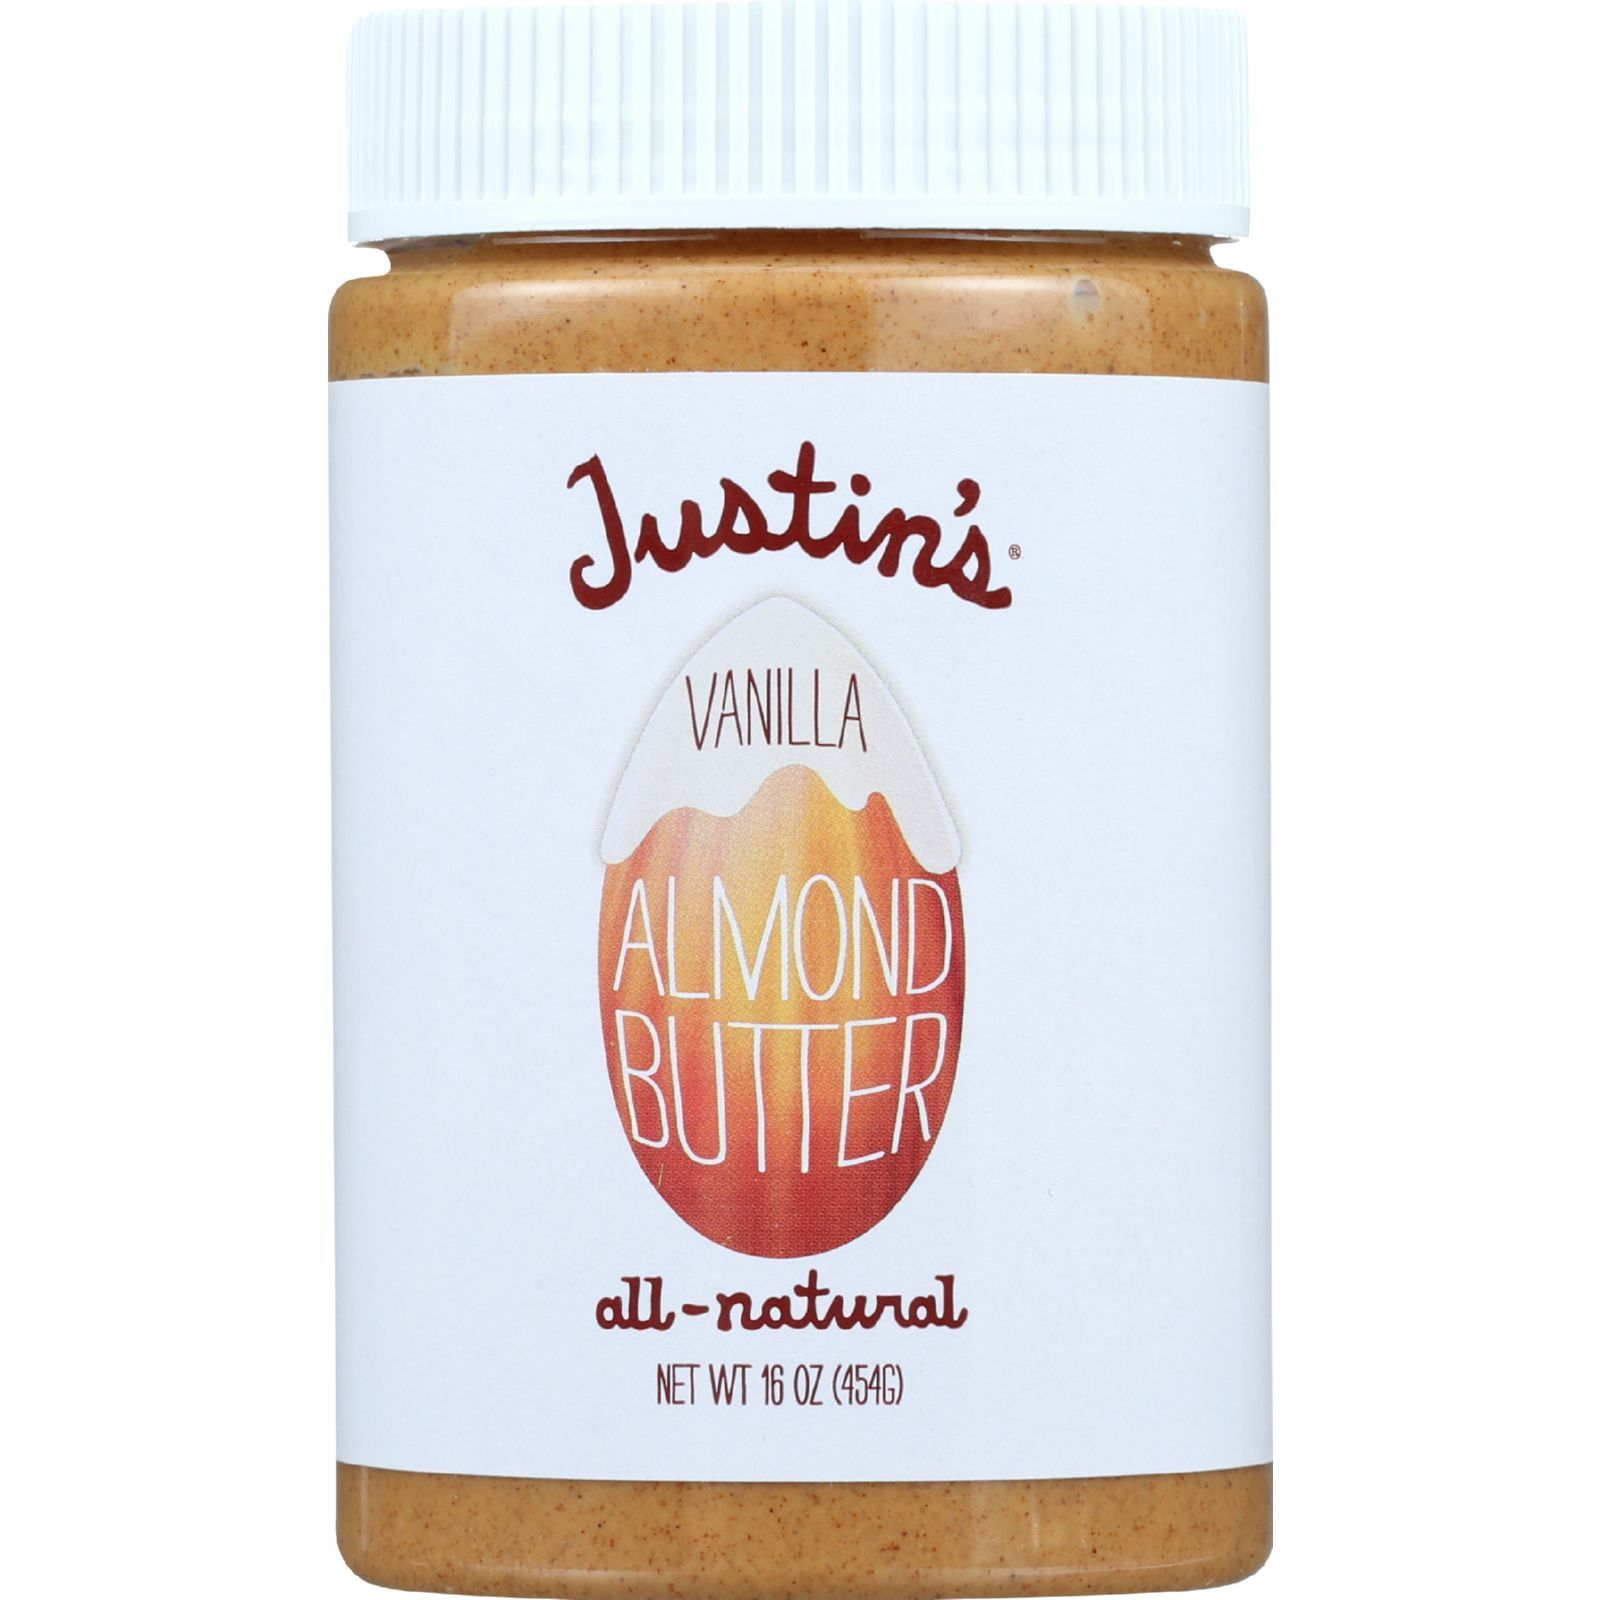 Justin's Nut Butter Almond Butter - Vanilla - Case of 6 - 16 oz.